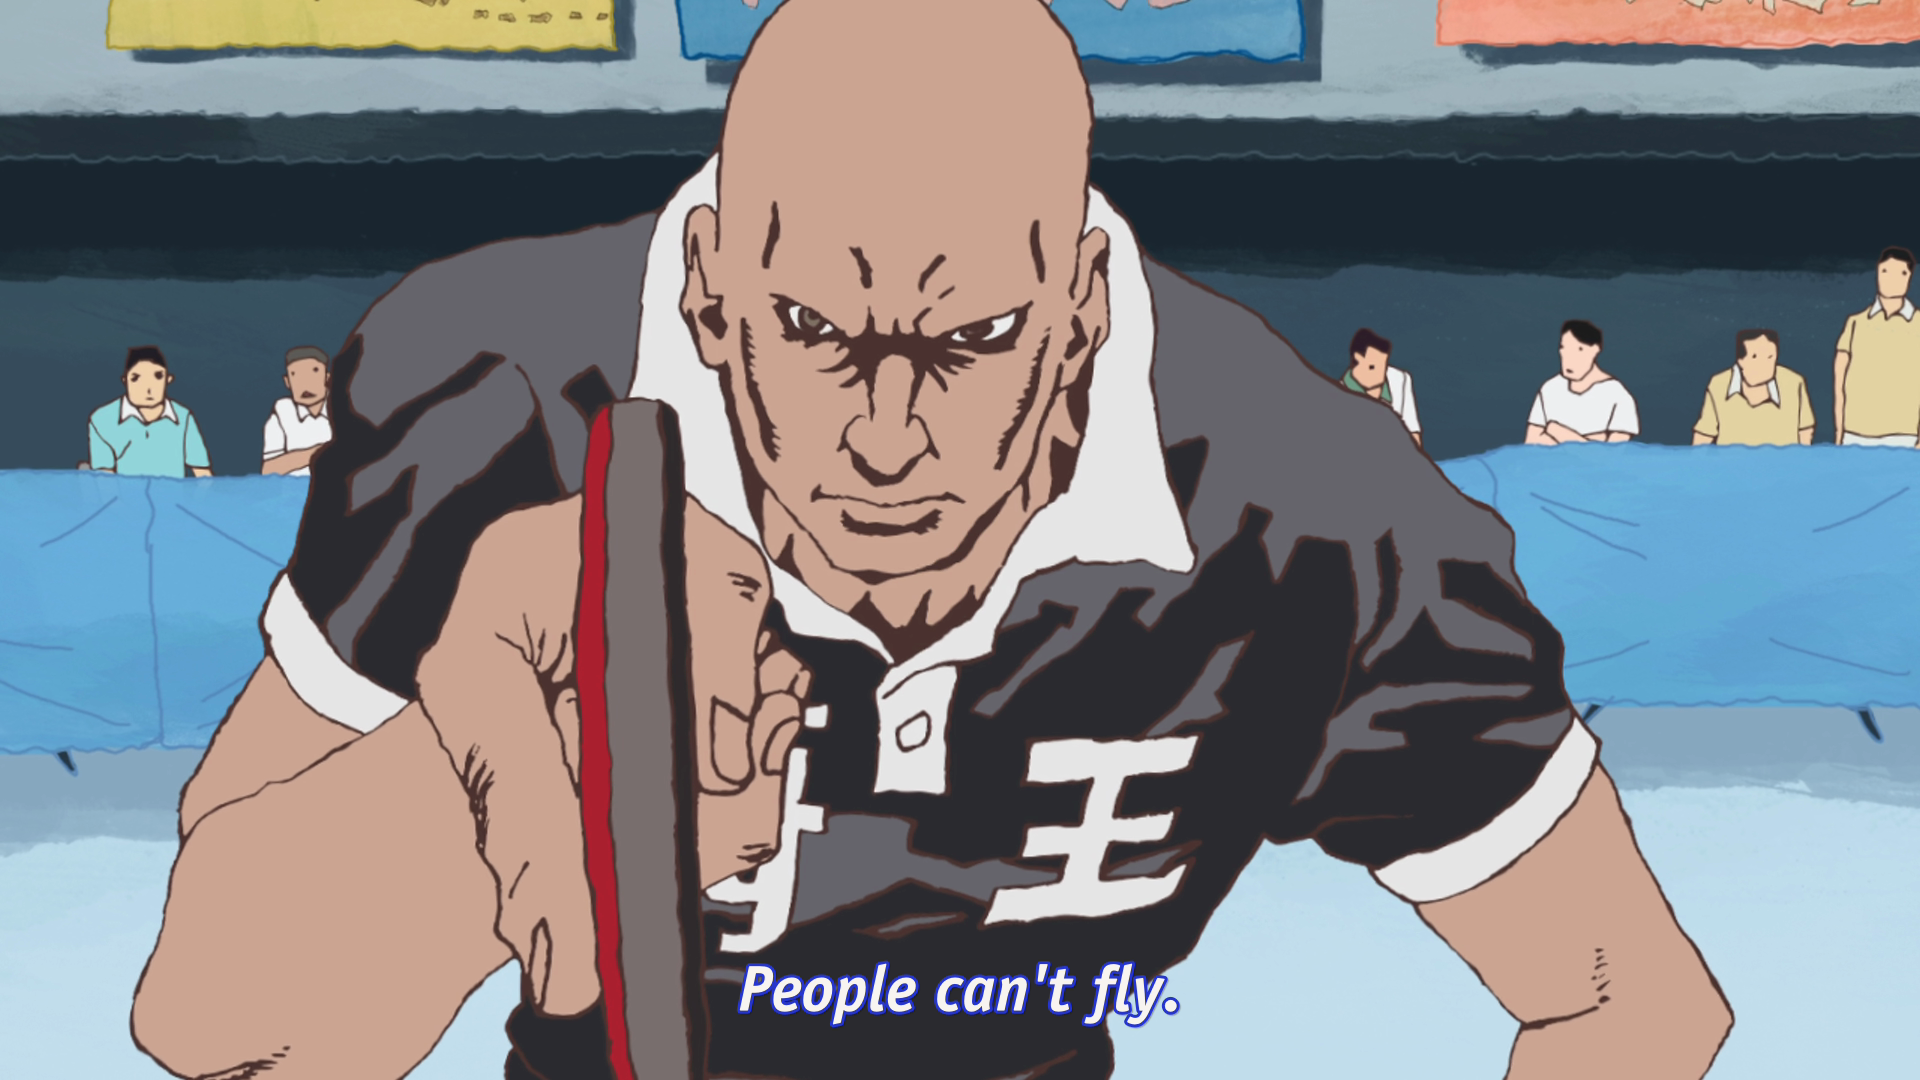 e10_kazama_fly_no.png